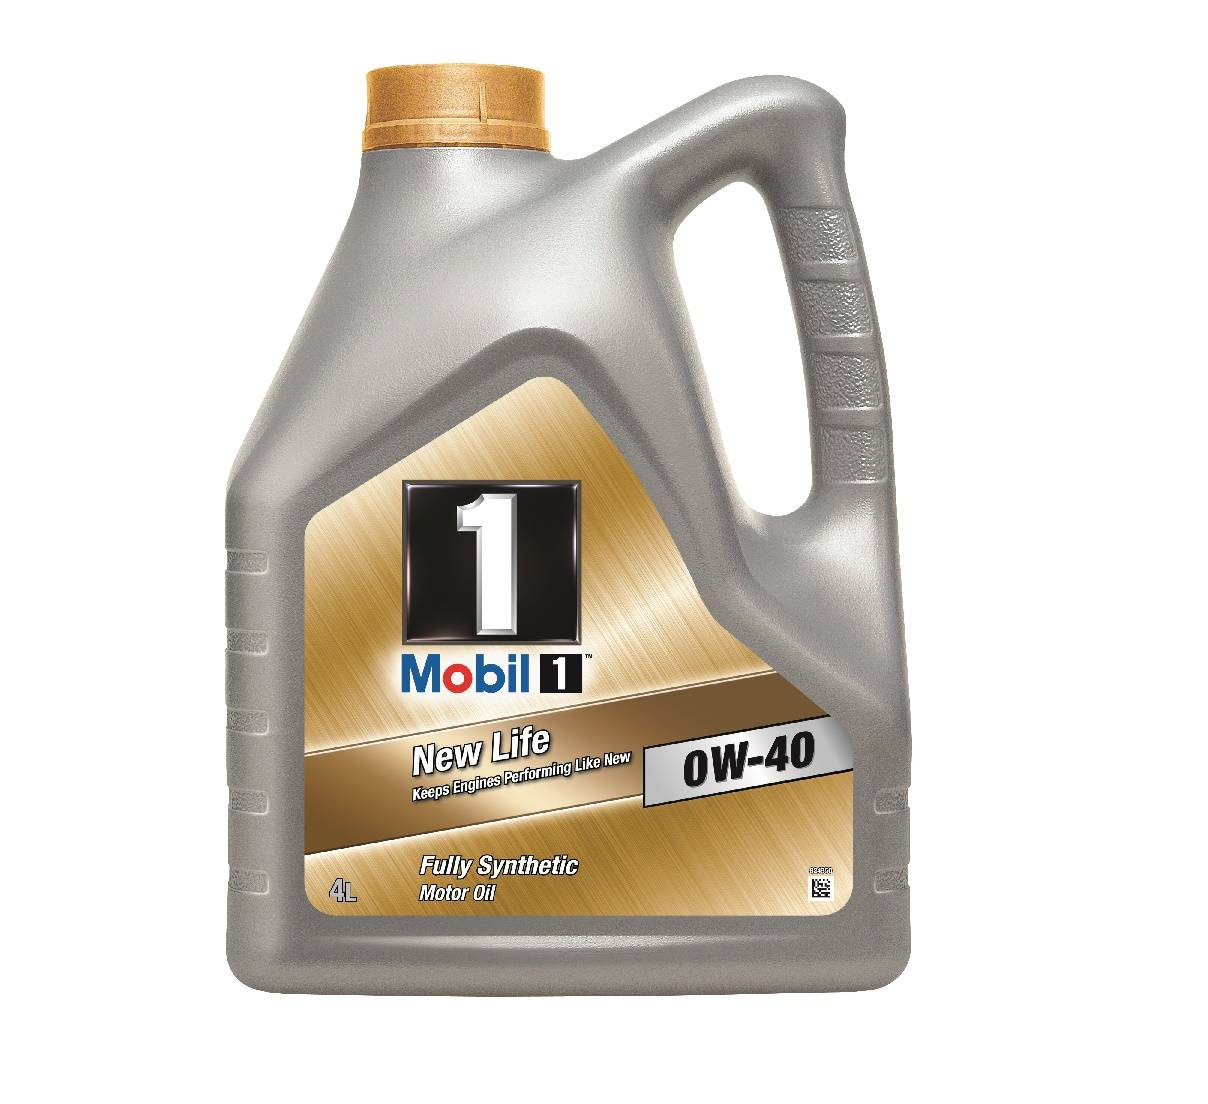 Mobil 1 0w-40 5w30 Full Synthetic Motor Oils Engine Oil Car Oil